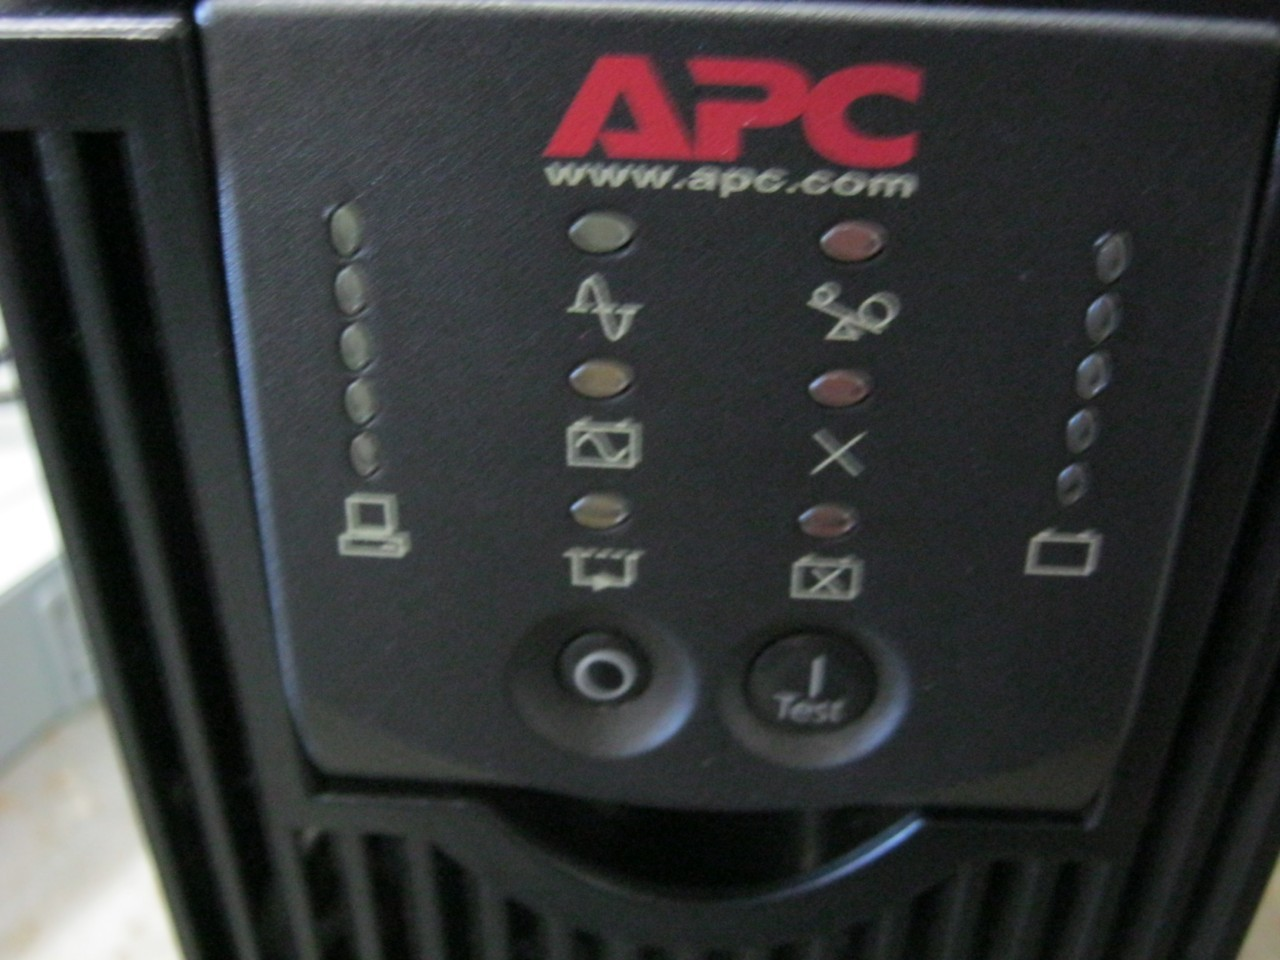 Apc Smart Ups Rt 3000 With Surt005 Step Down Transformer